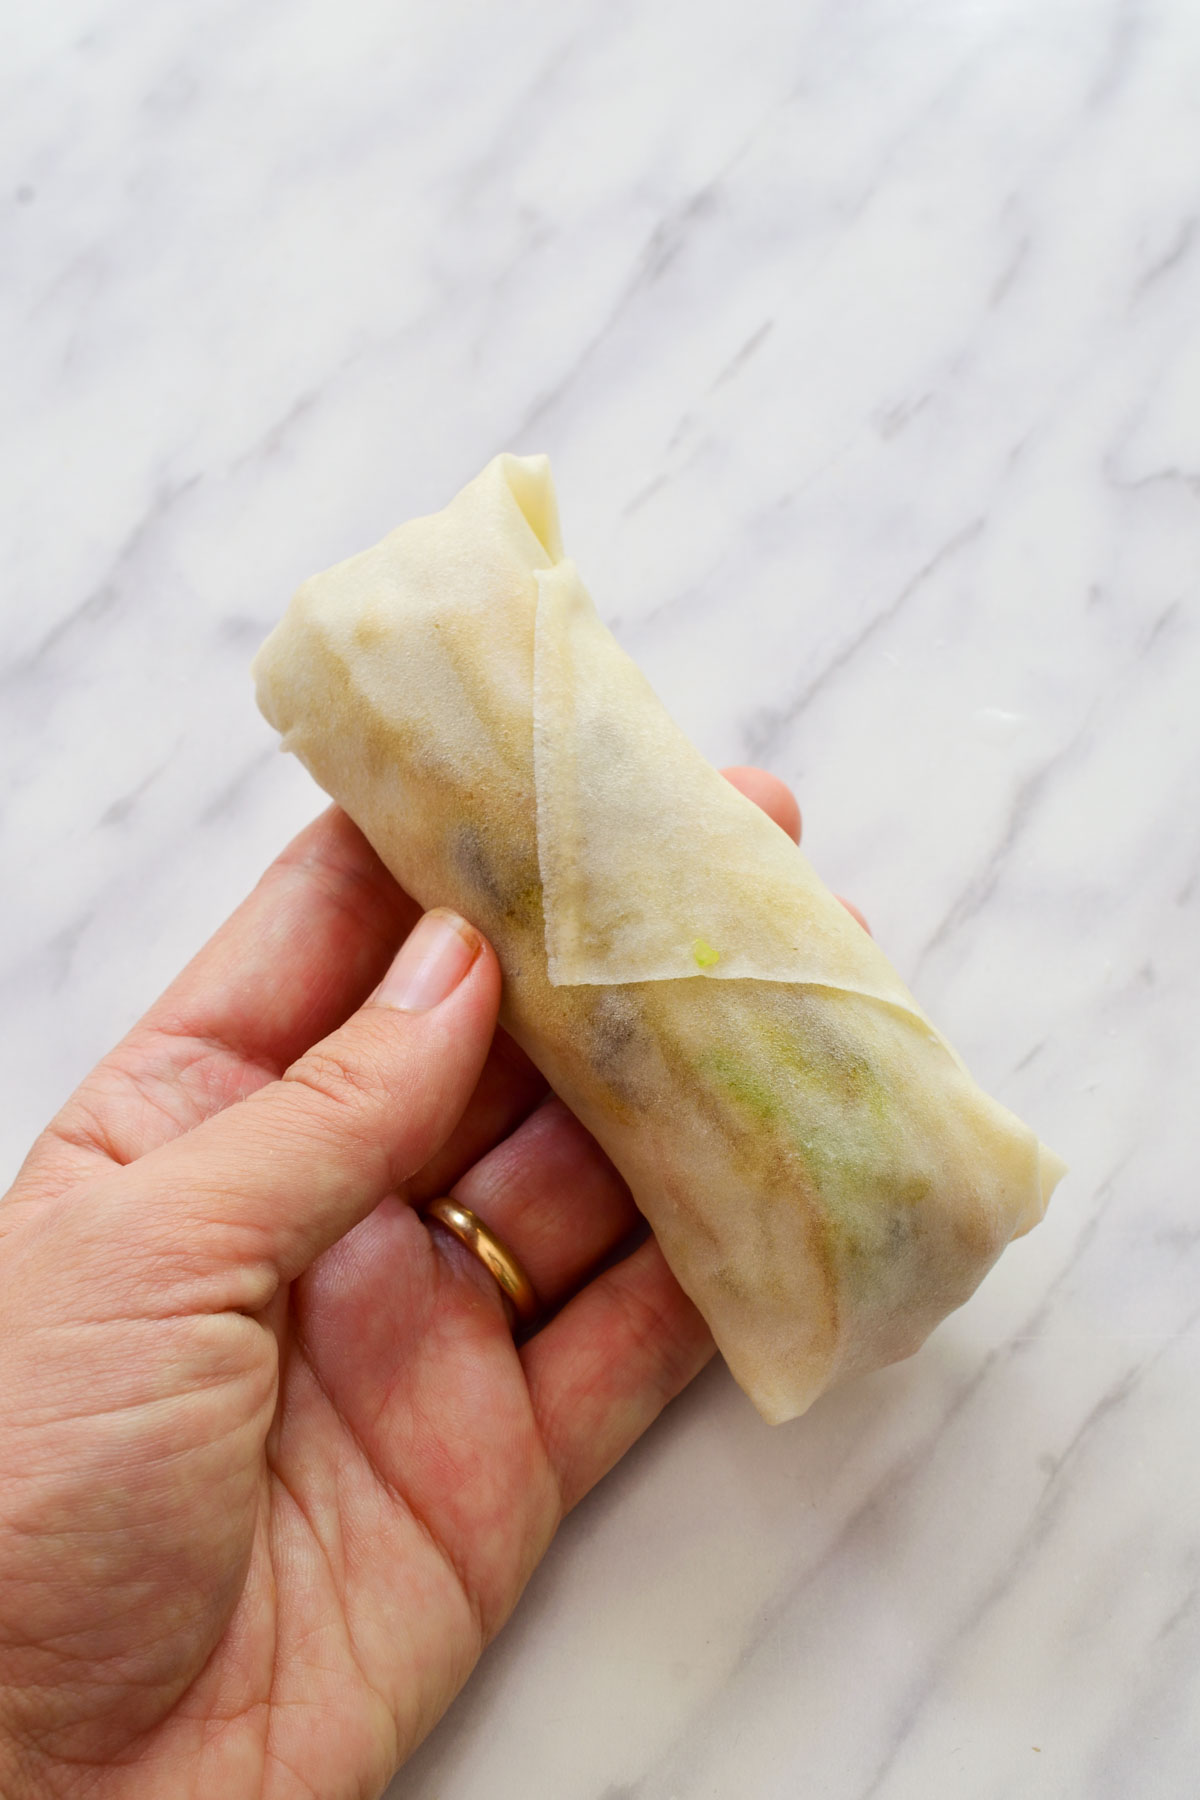 A hand holding the finished spring roll before frying.